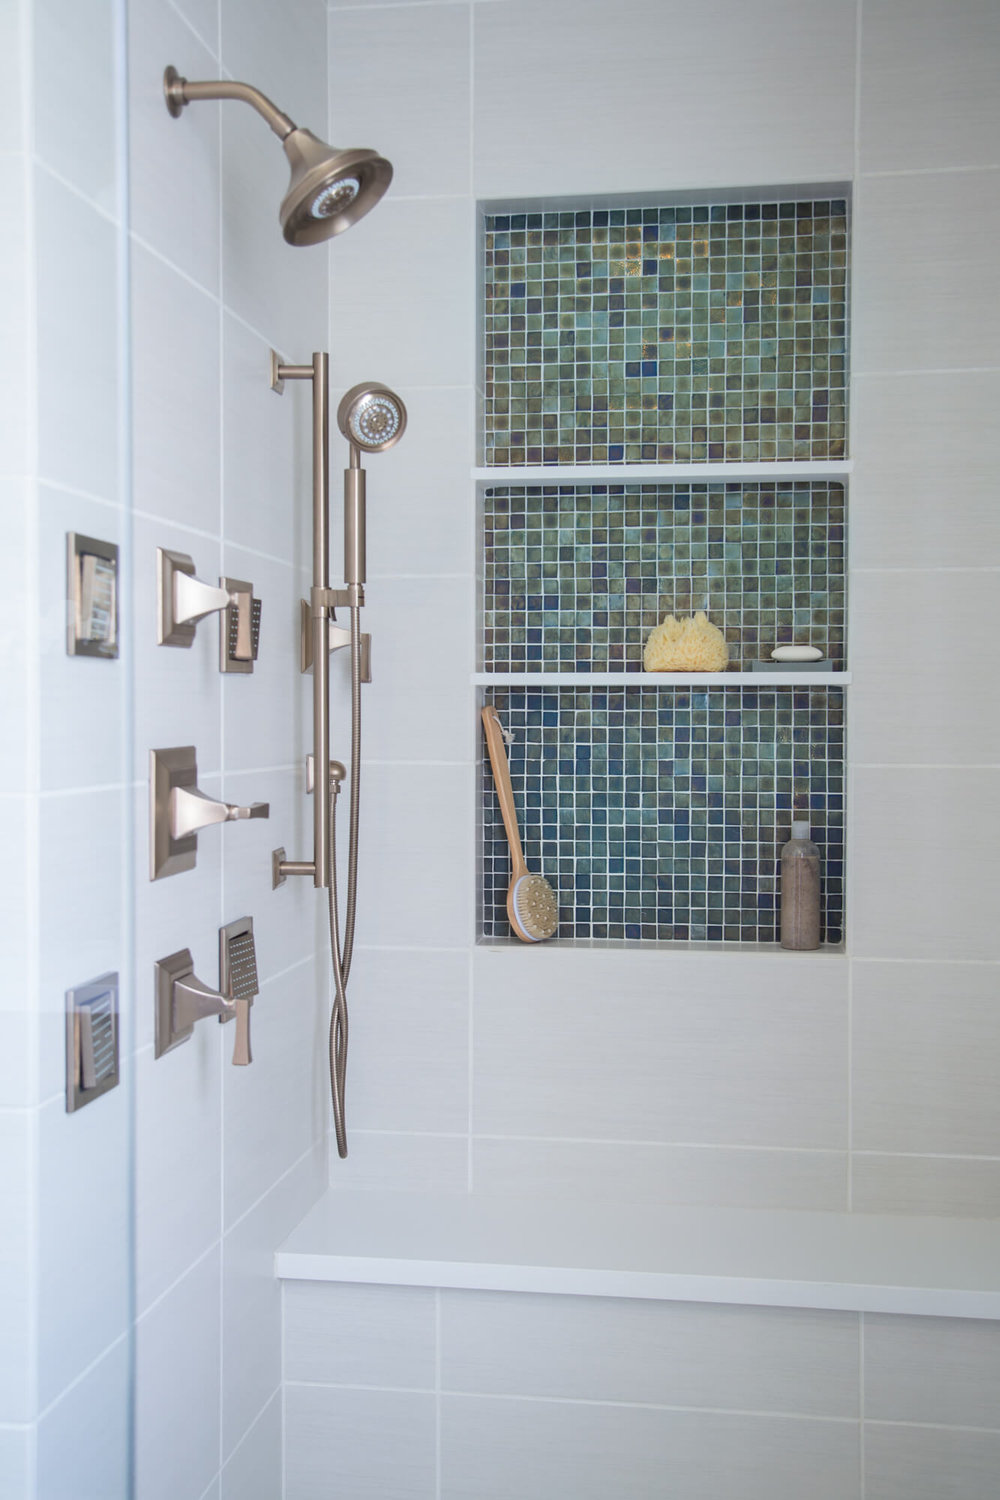 25 Beautiful Shower Niches For Your Beautiful Bath Products, Designer: Carla Aston, Photographer: Tori Aston